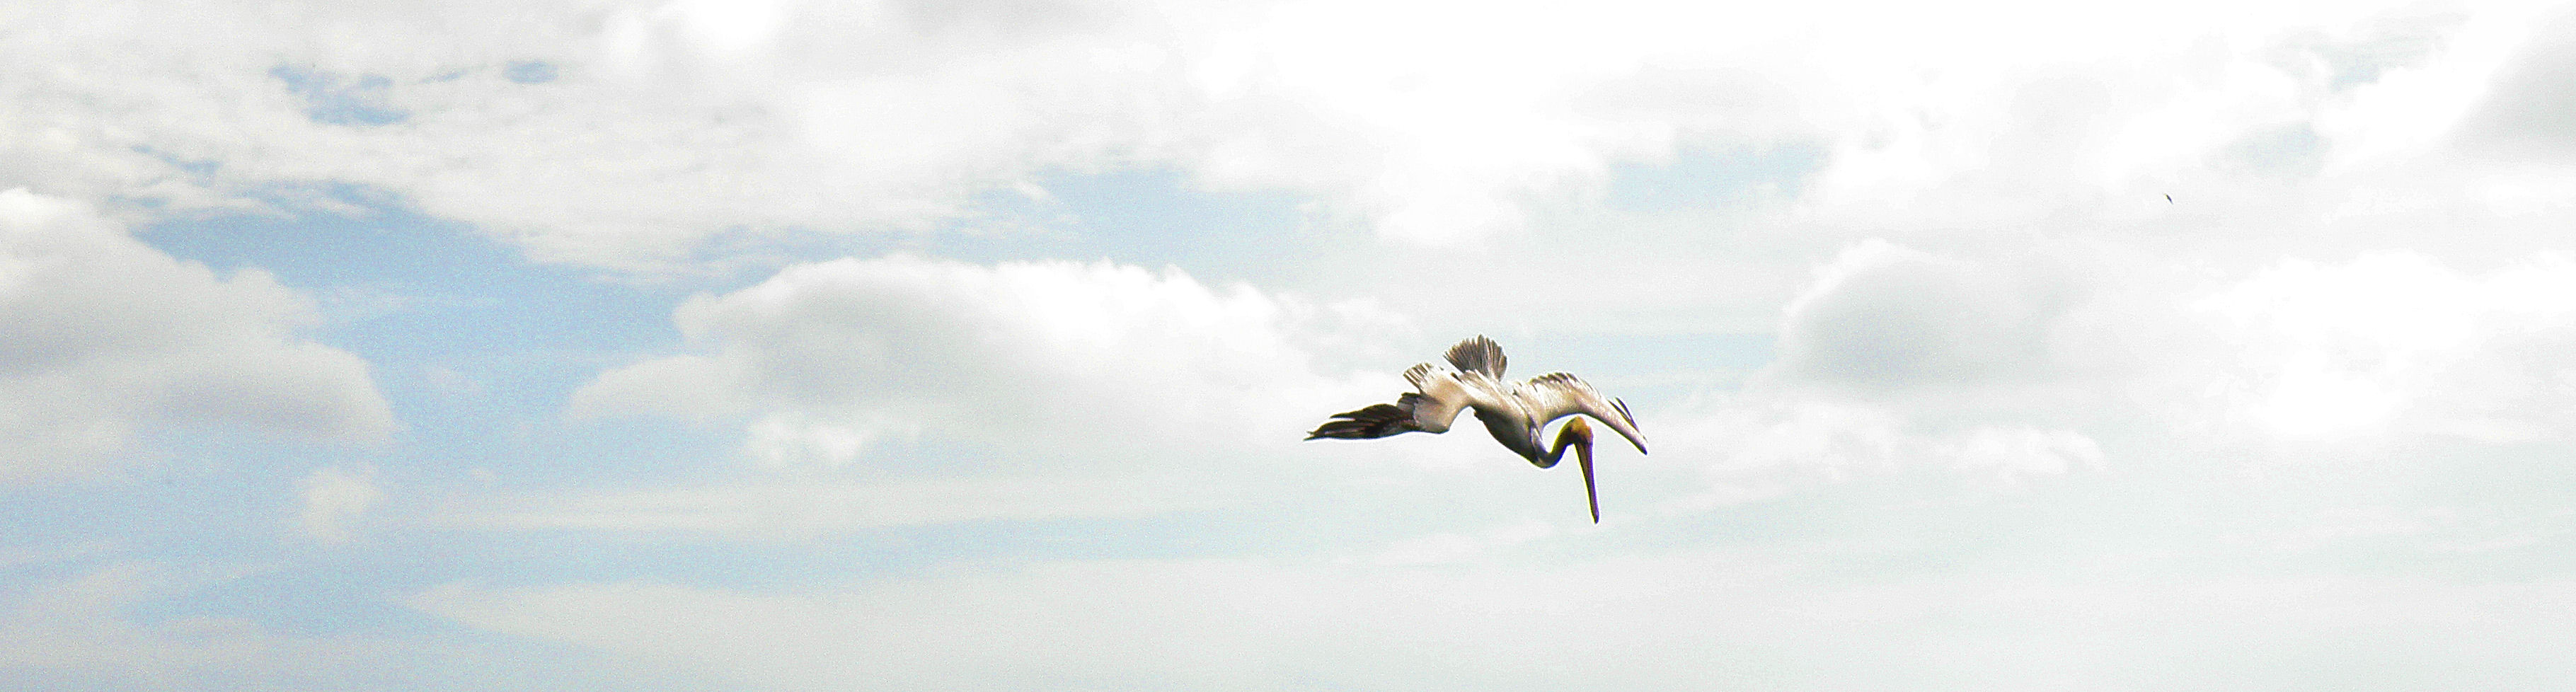 Pelican taking a dive